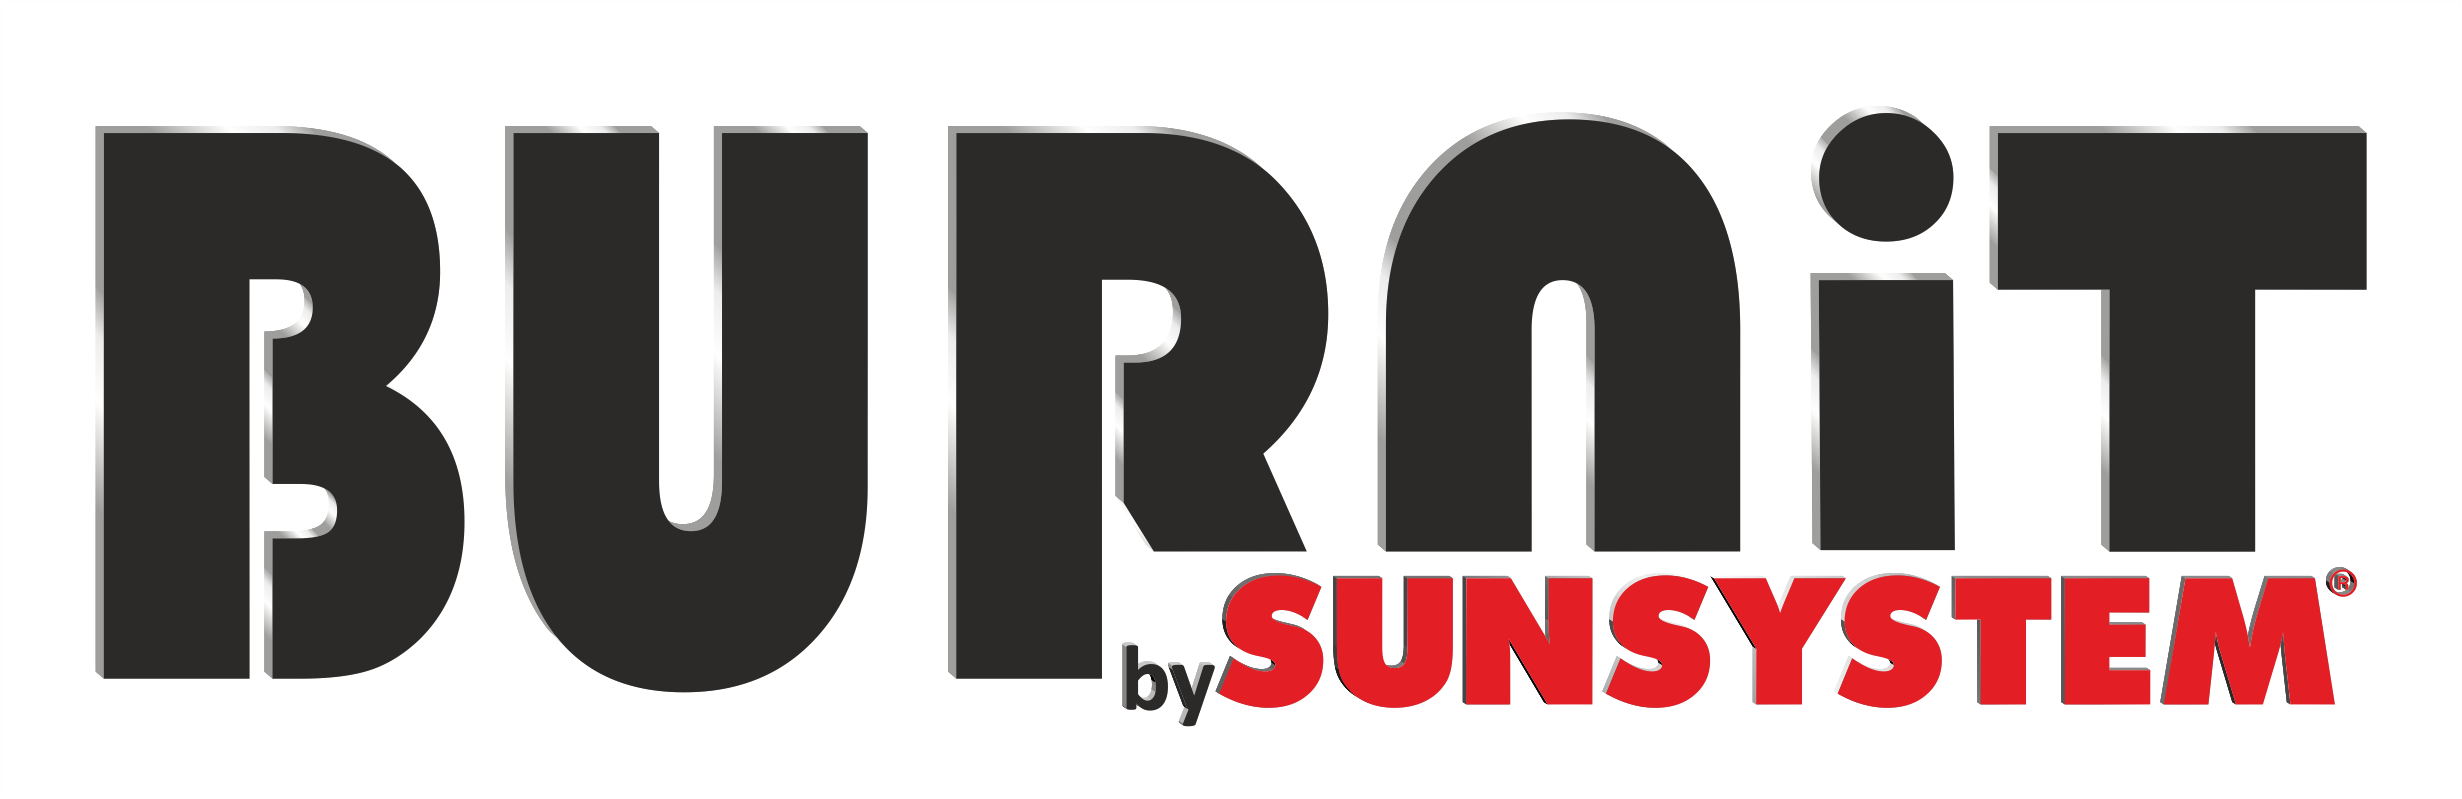 BURNiT by SUNSYSTEM